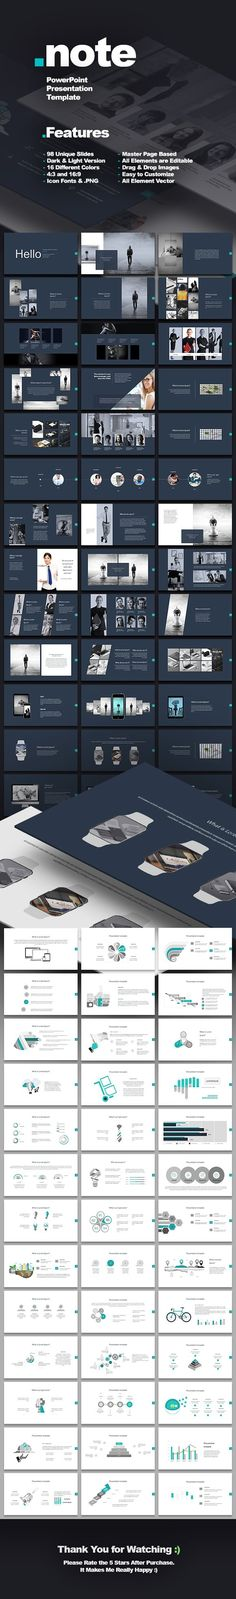 Bandle 3 presentation template by oyunerdene99 on @creativemarket